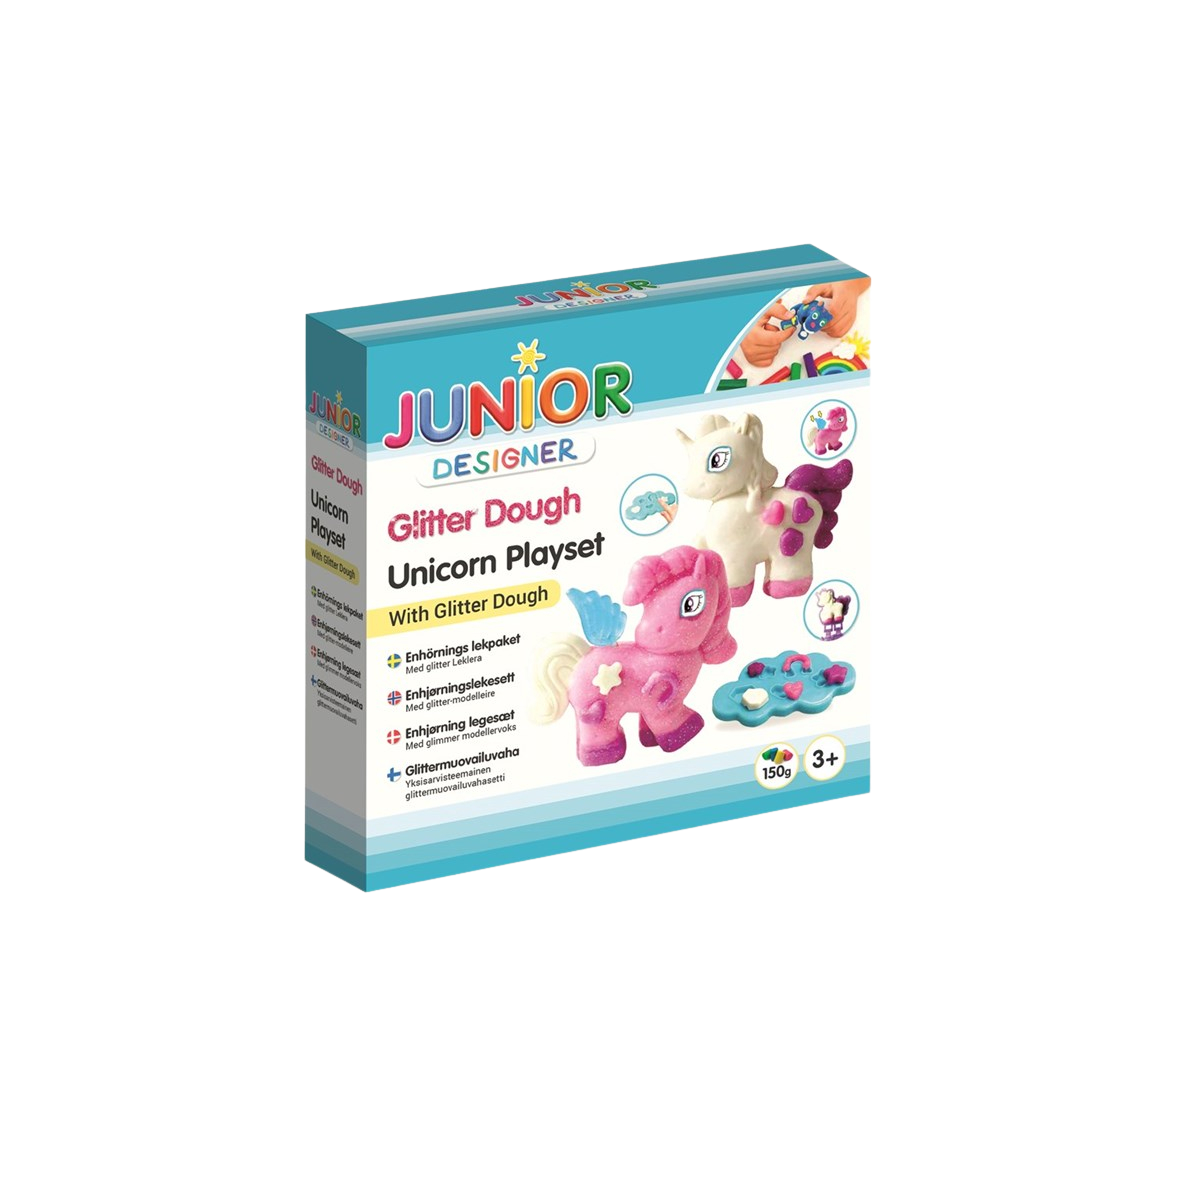 Glitter Dough Unicorn Playset